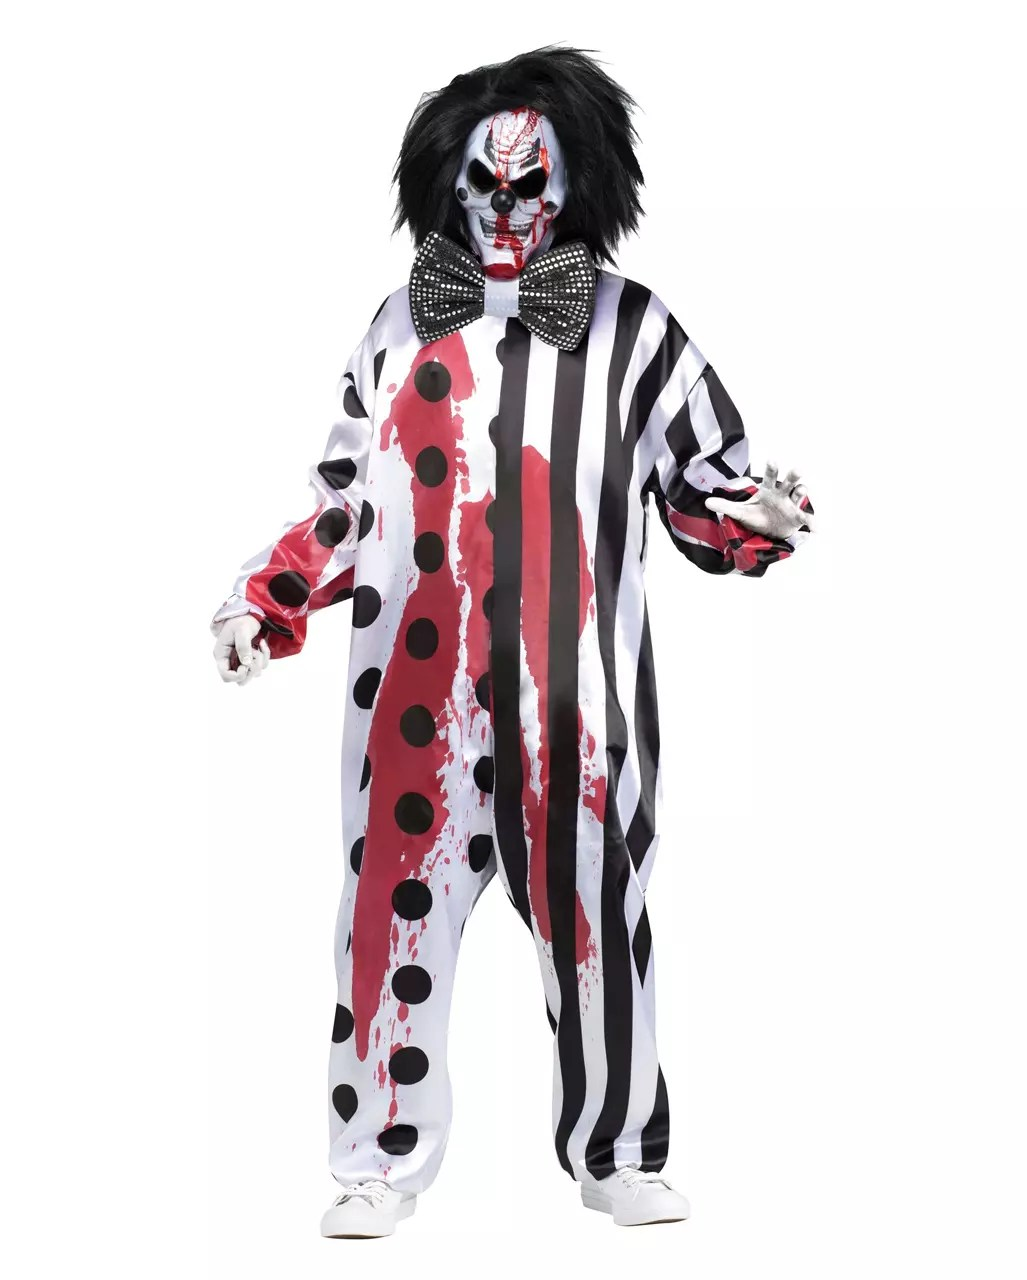 Wanddeko Clown Bleeding Clown Costume With Mask